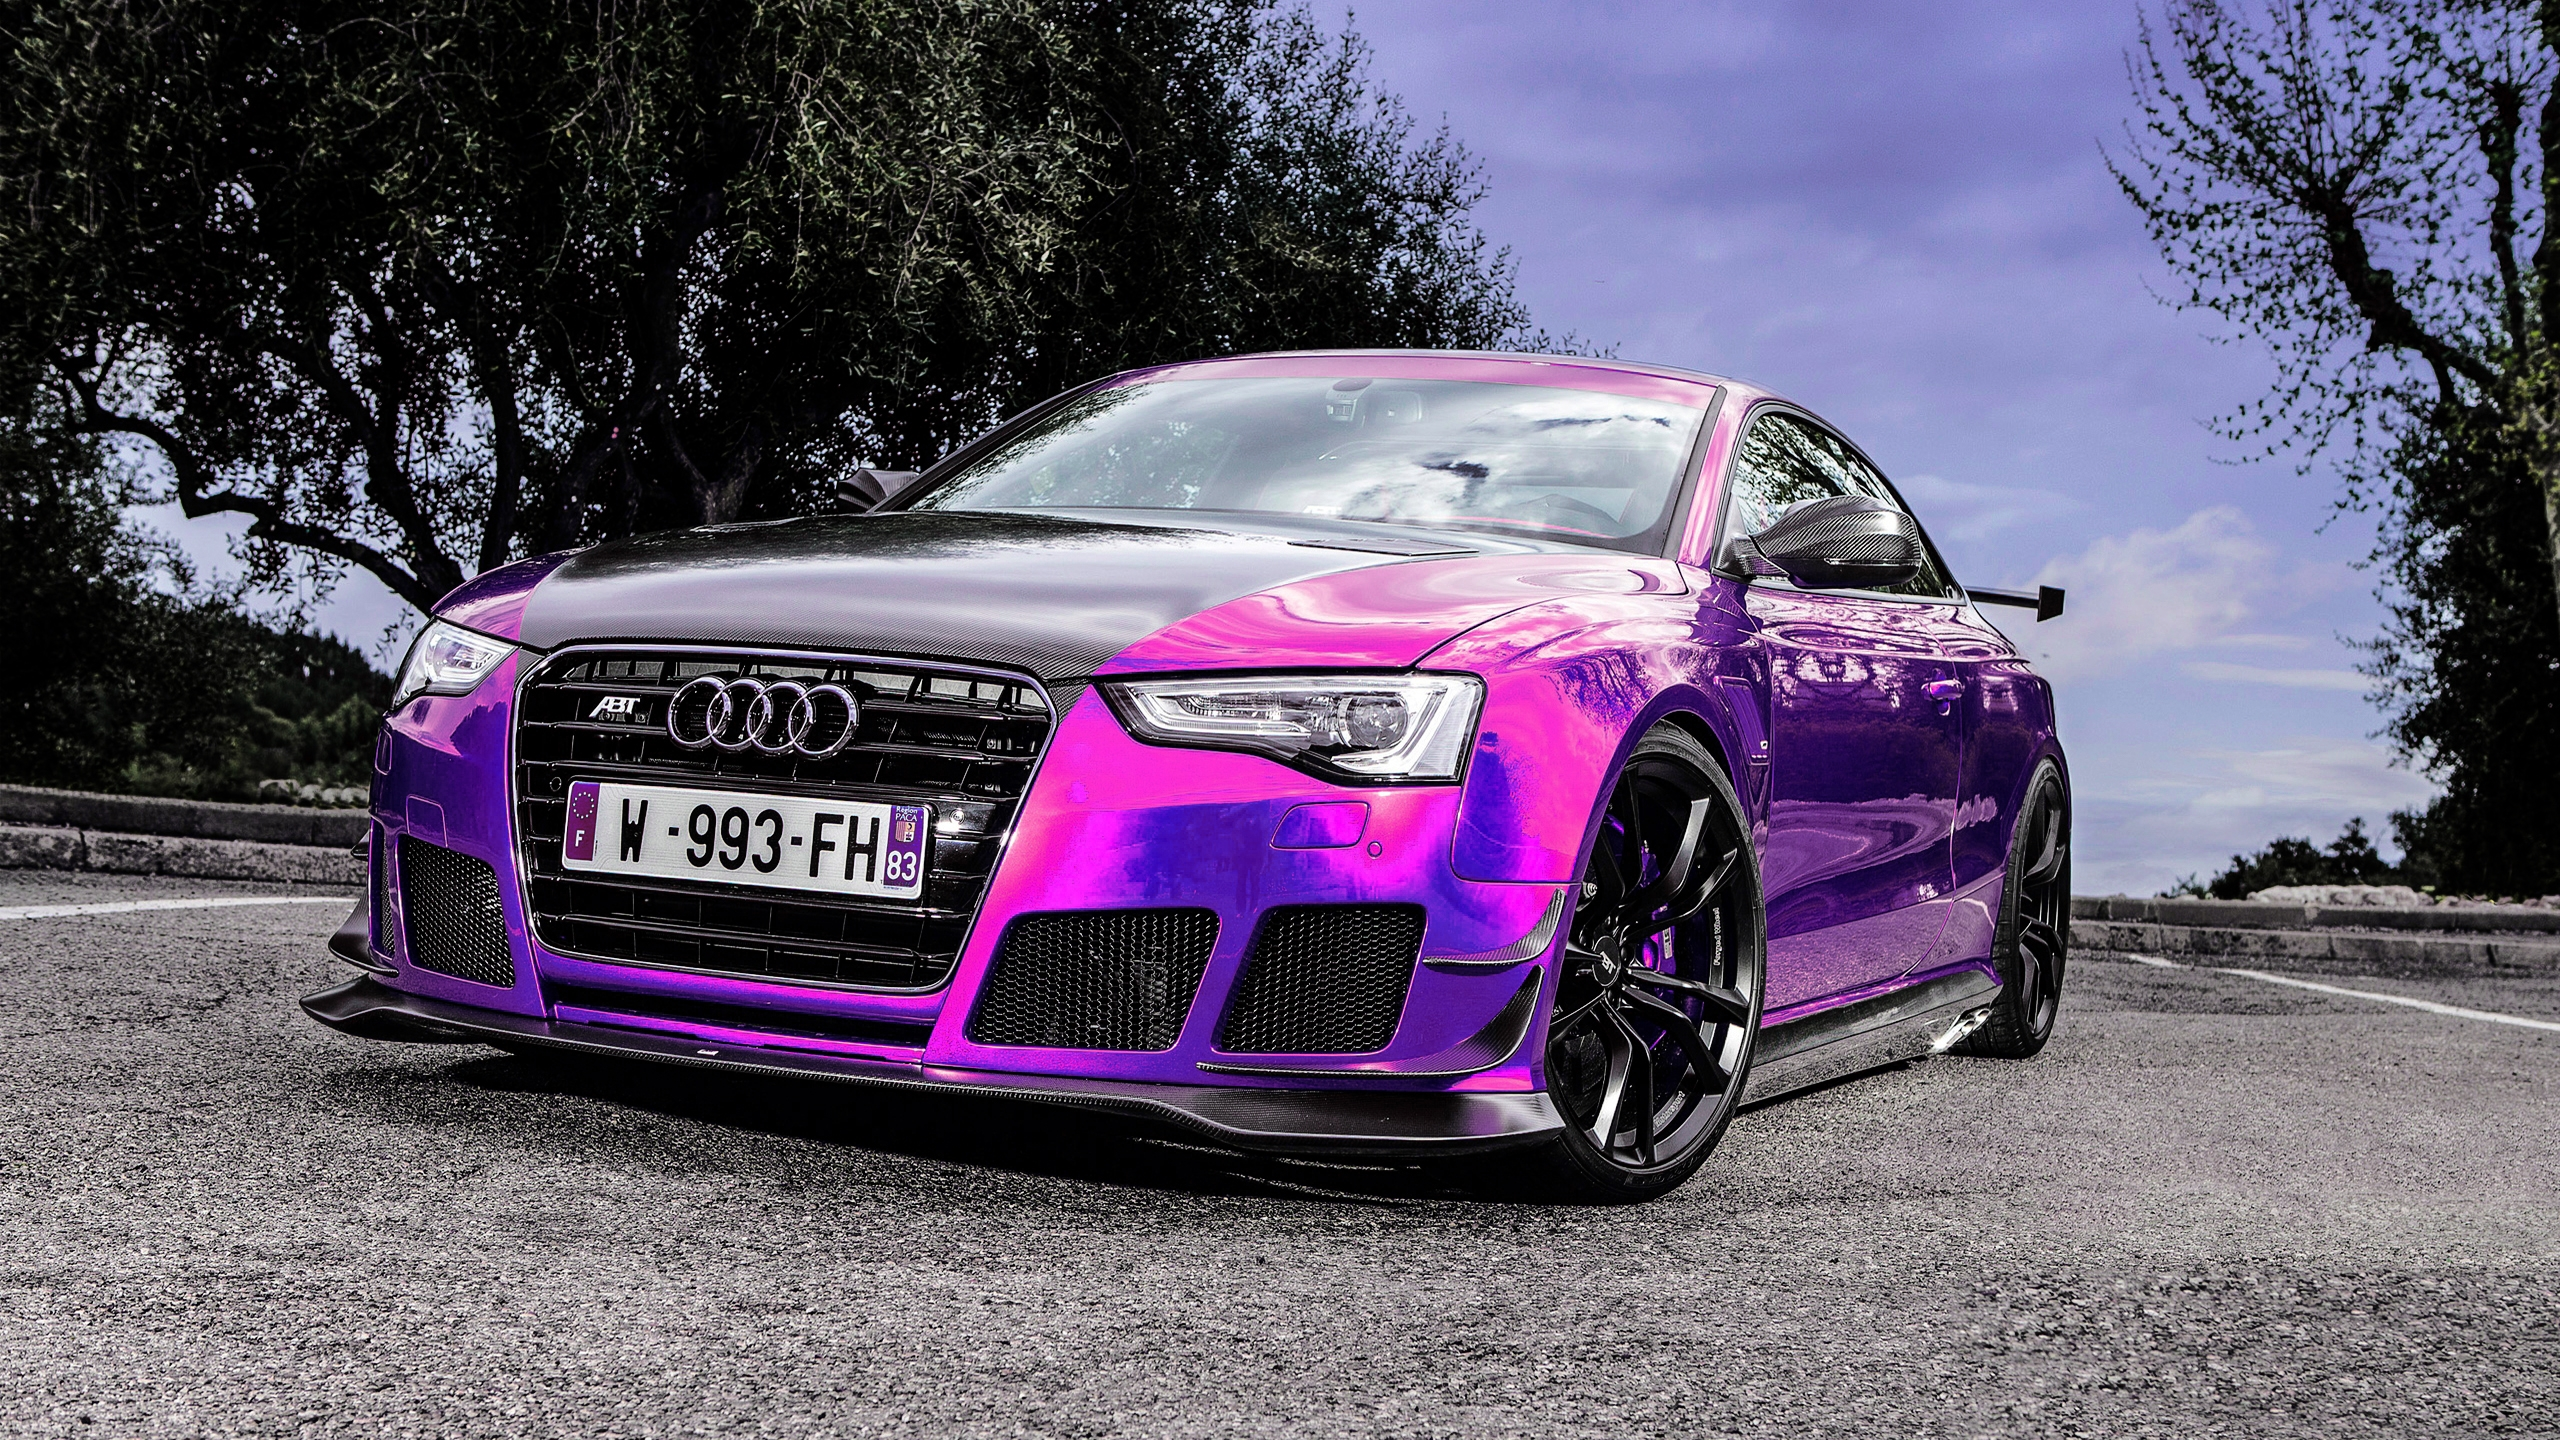 AUDI RS5-R Coupe ABT Sportsline Purpule - - AUDI RS5-R Coupe ABT Sportsline Purpule